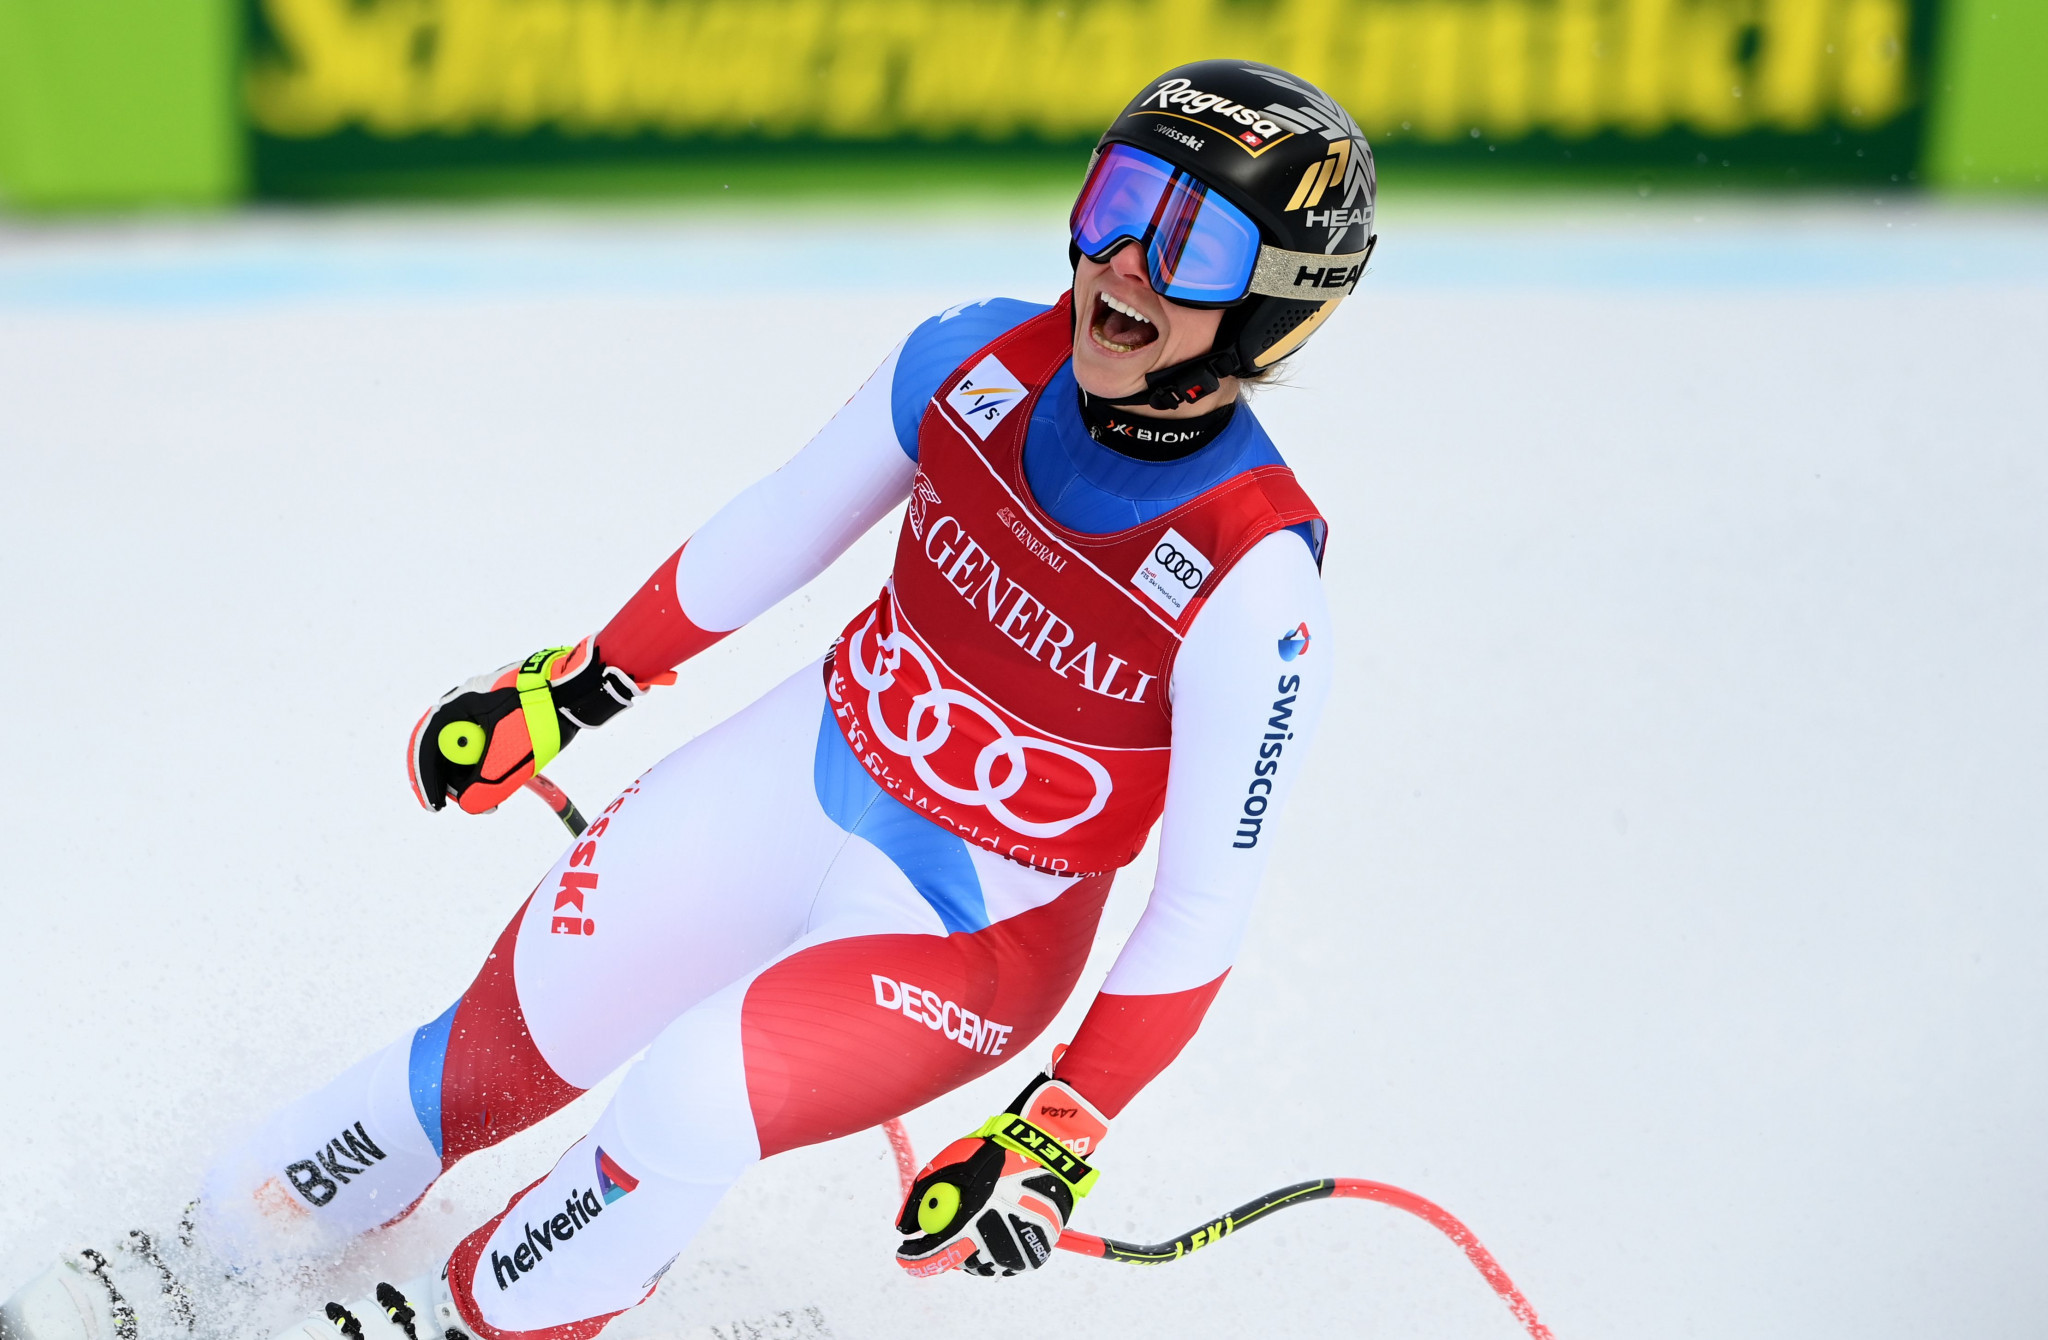 Gut-Behrami wins third consecutive super-G race at Alpine Skiing World Cup